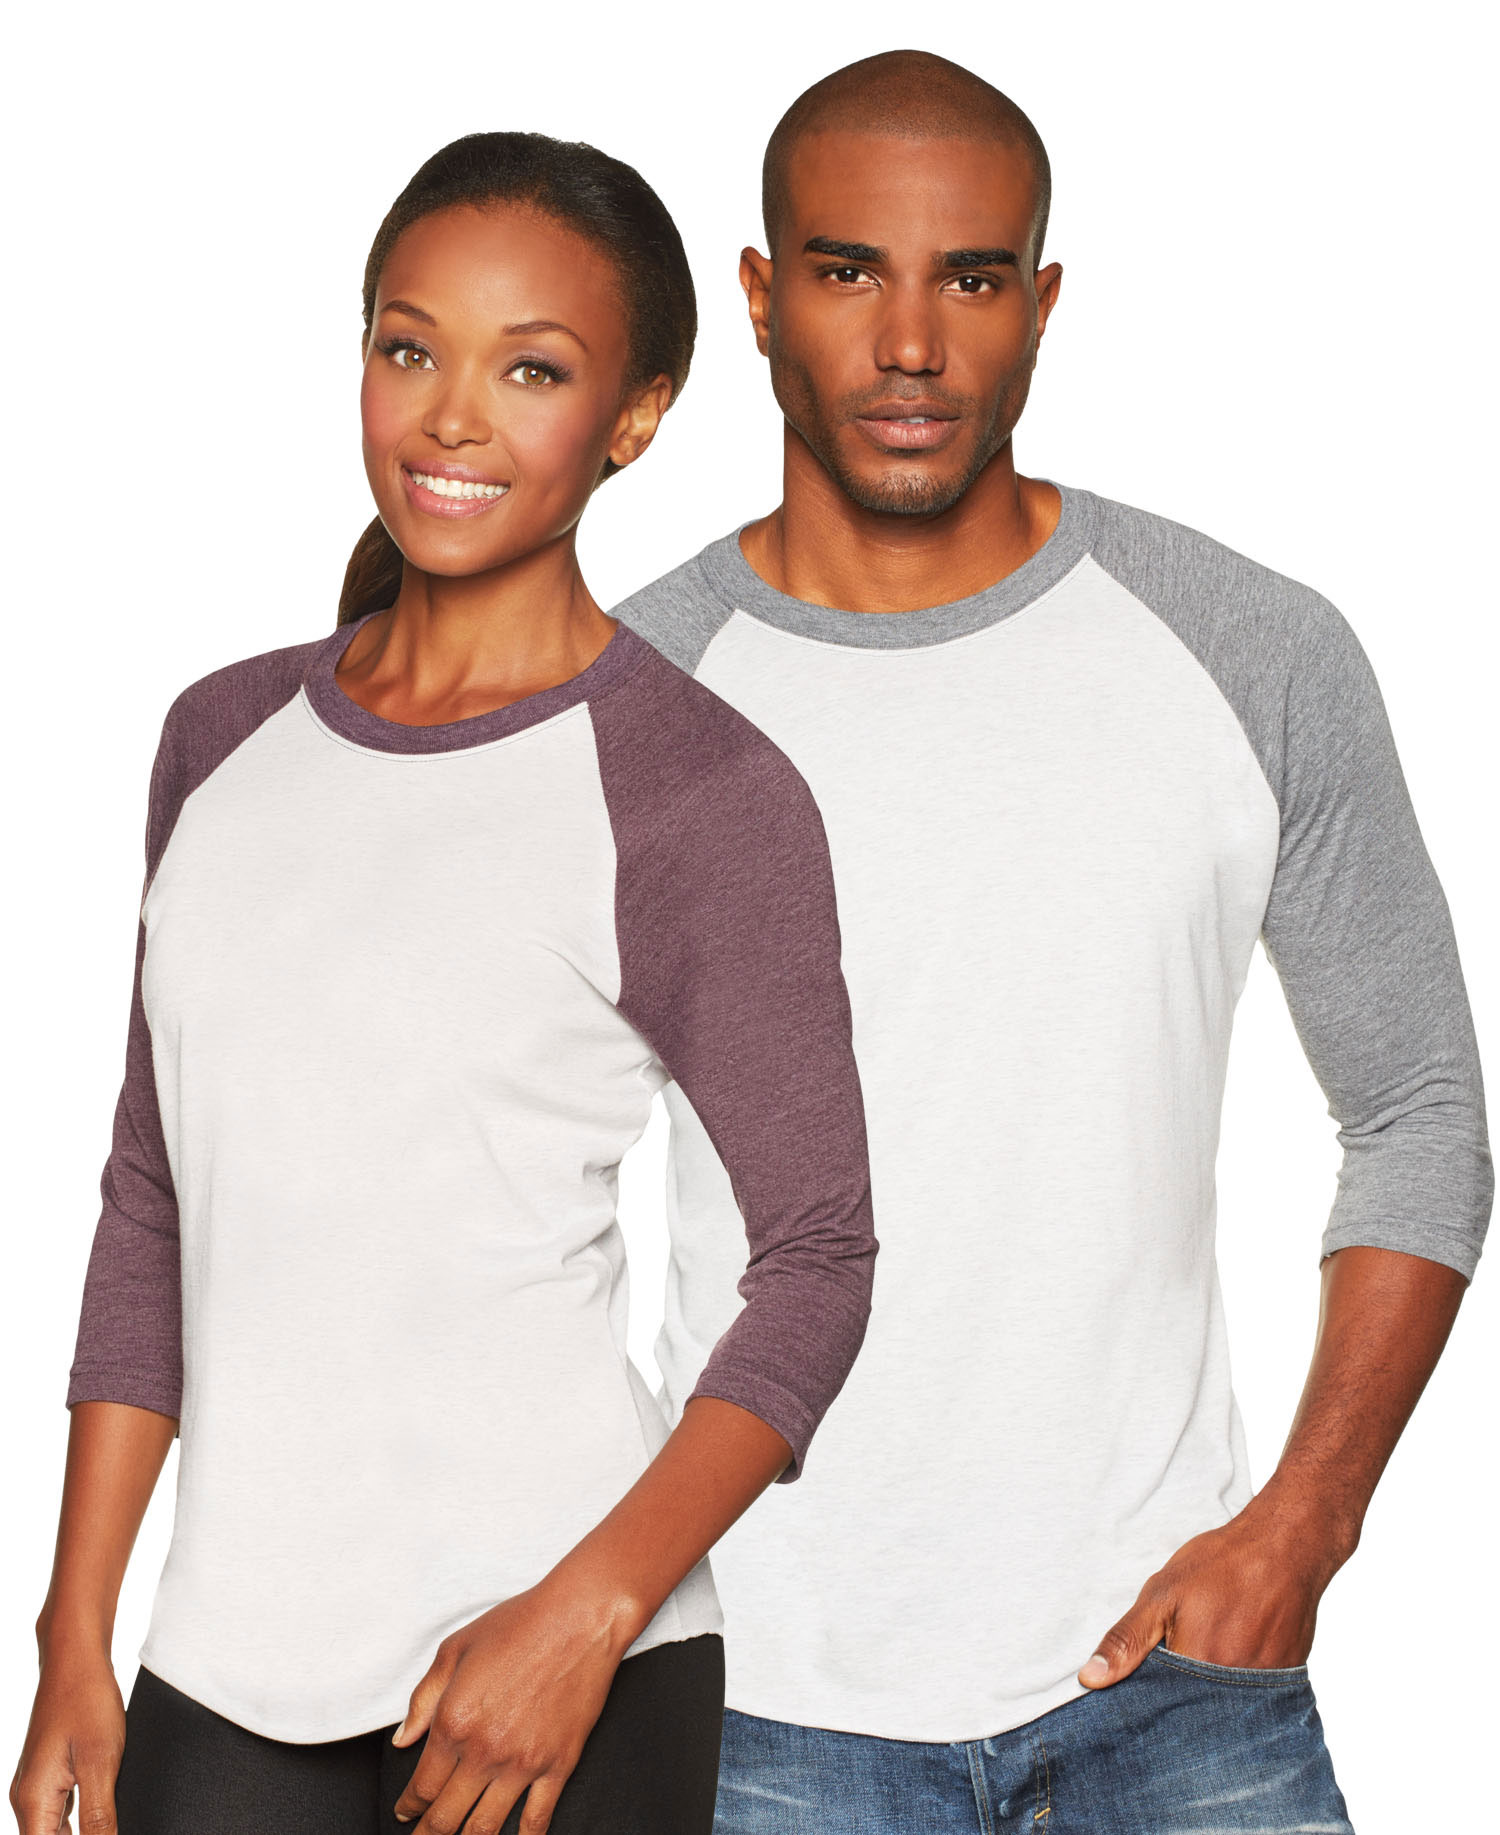 Next Level - NL6051 Unisex Triblend 3/4 Raglan